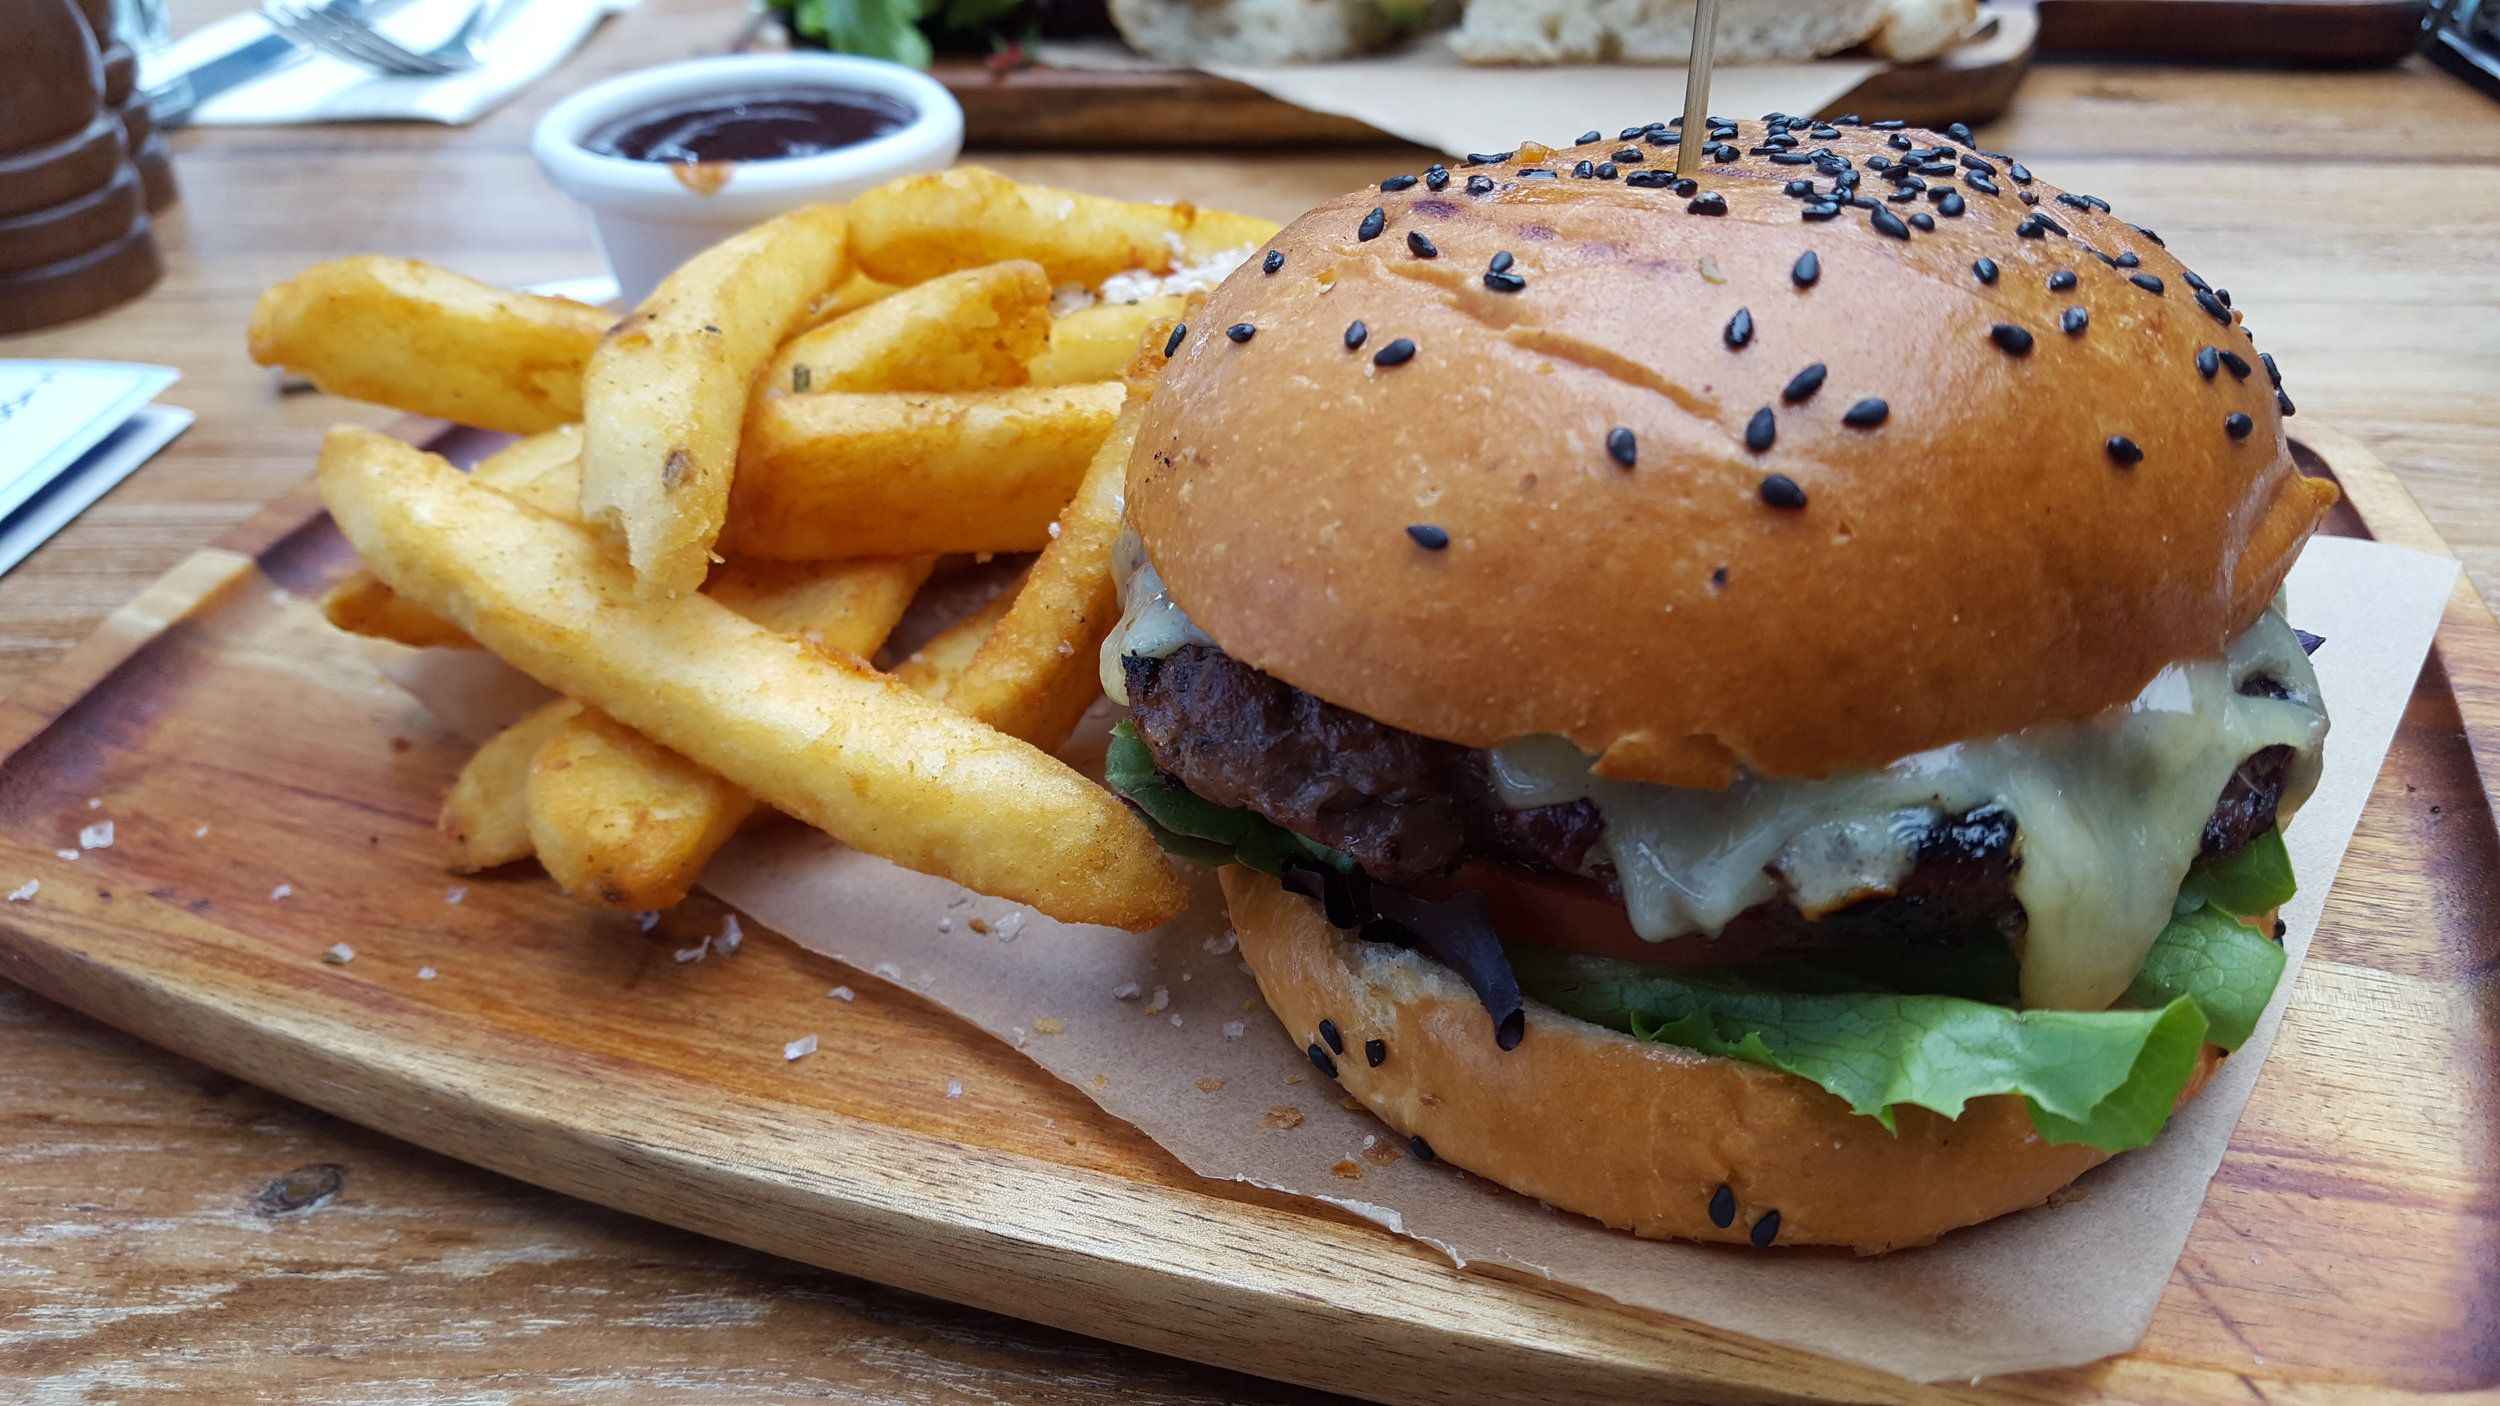 Despite my willingness to eat anything after 15 hours of airline food, this burger was put together beautifully.Complete with artisanal cutting board.  Harbour Bar & Kitchen